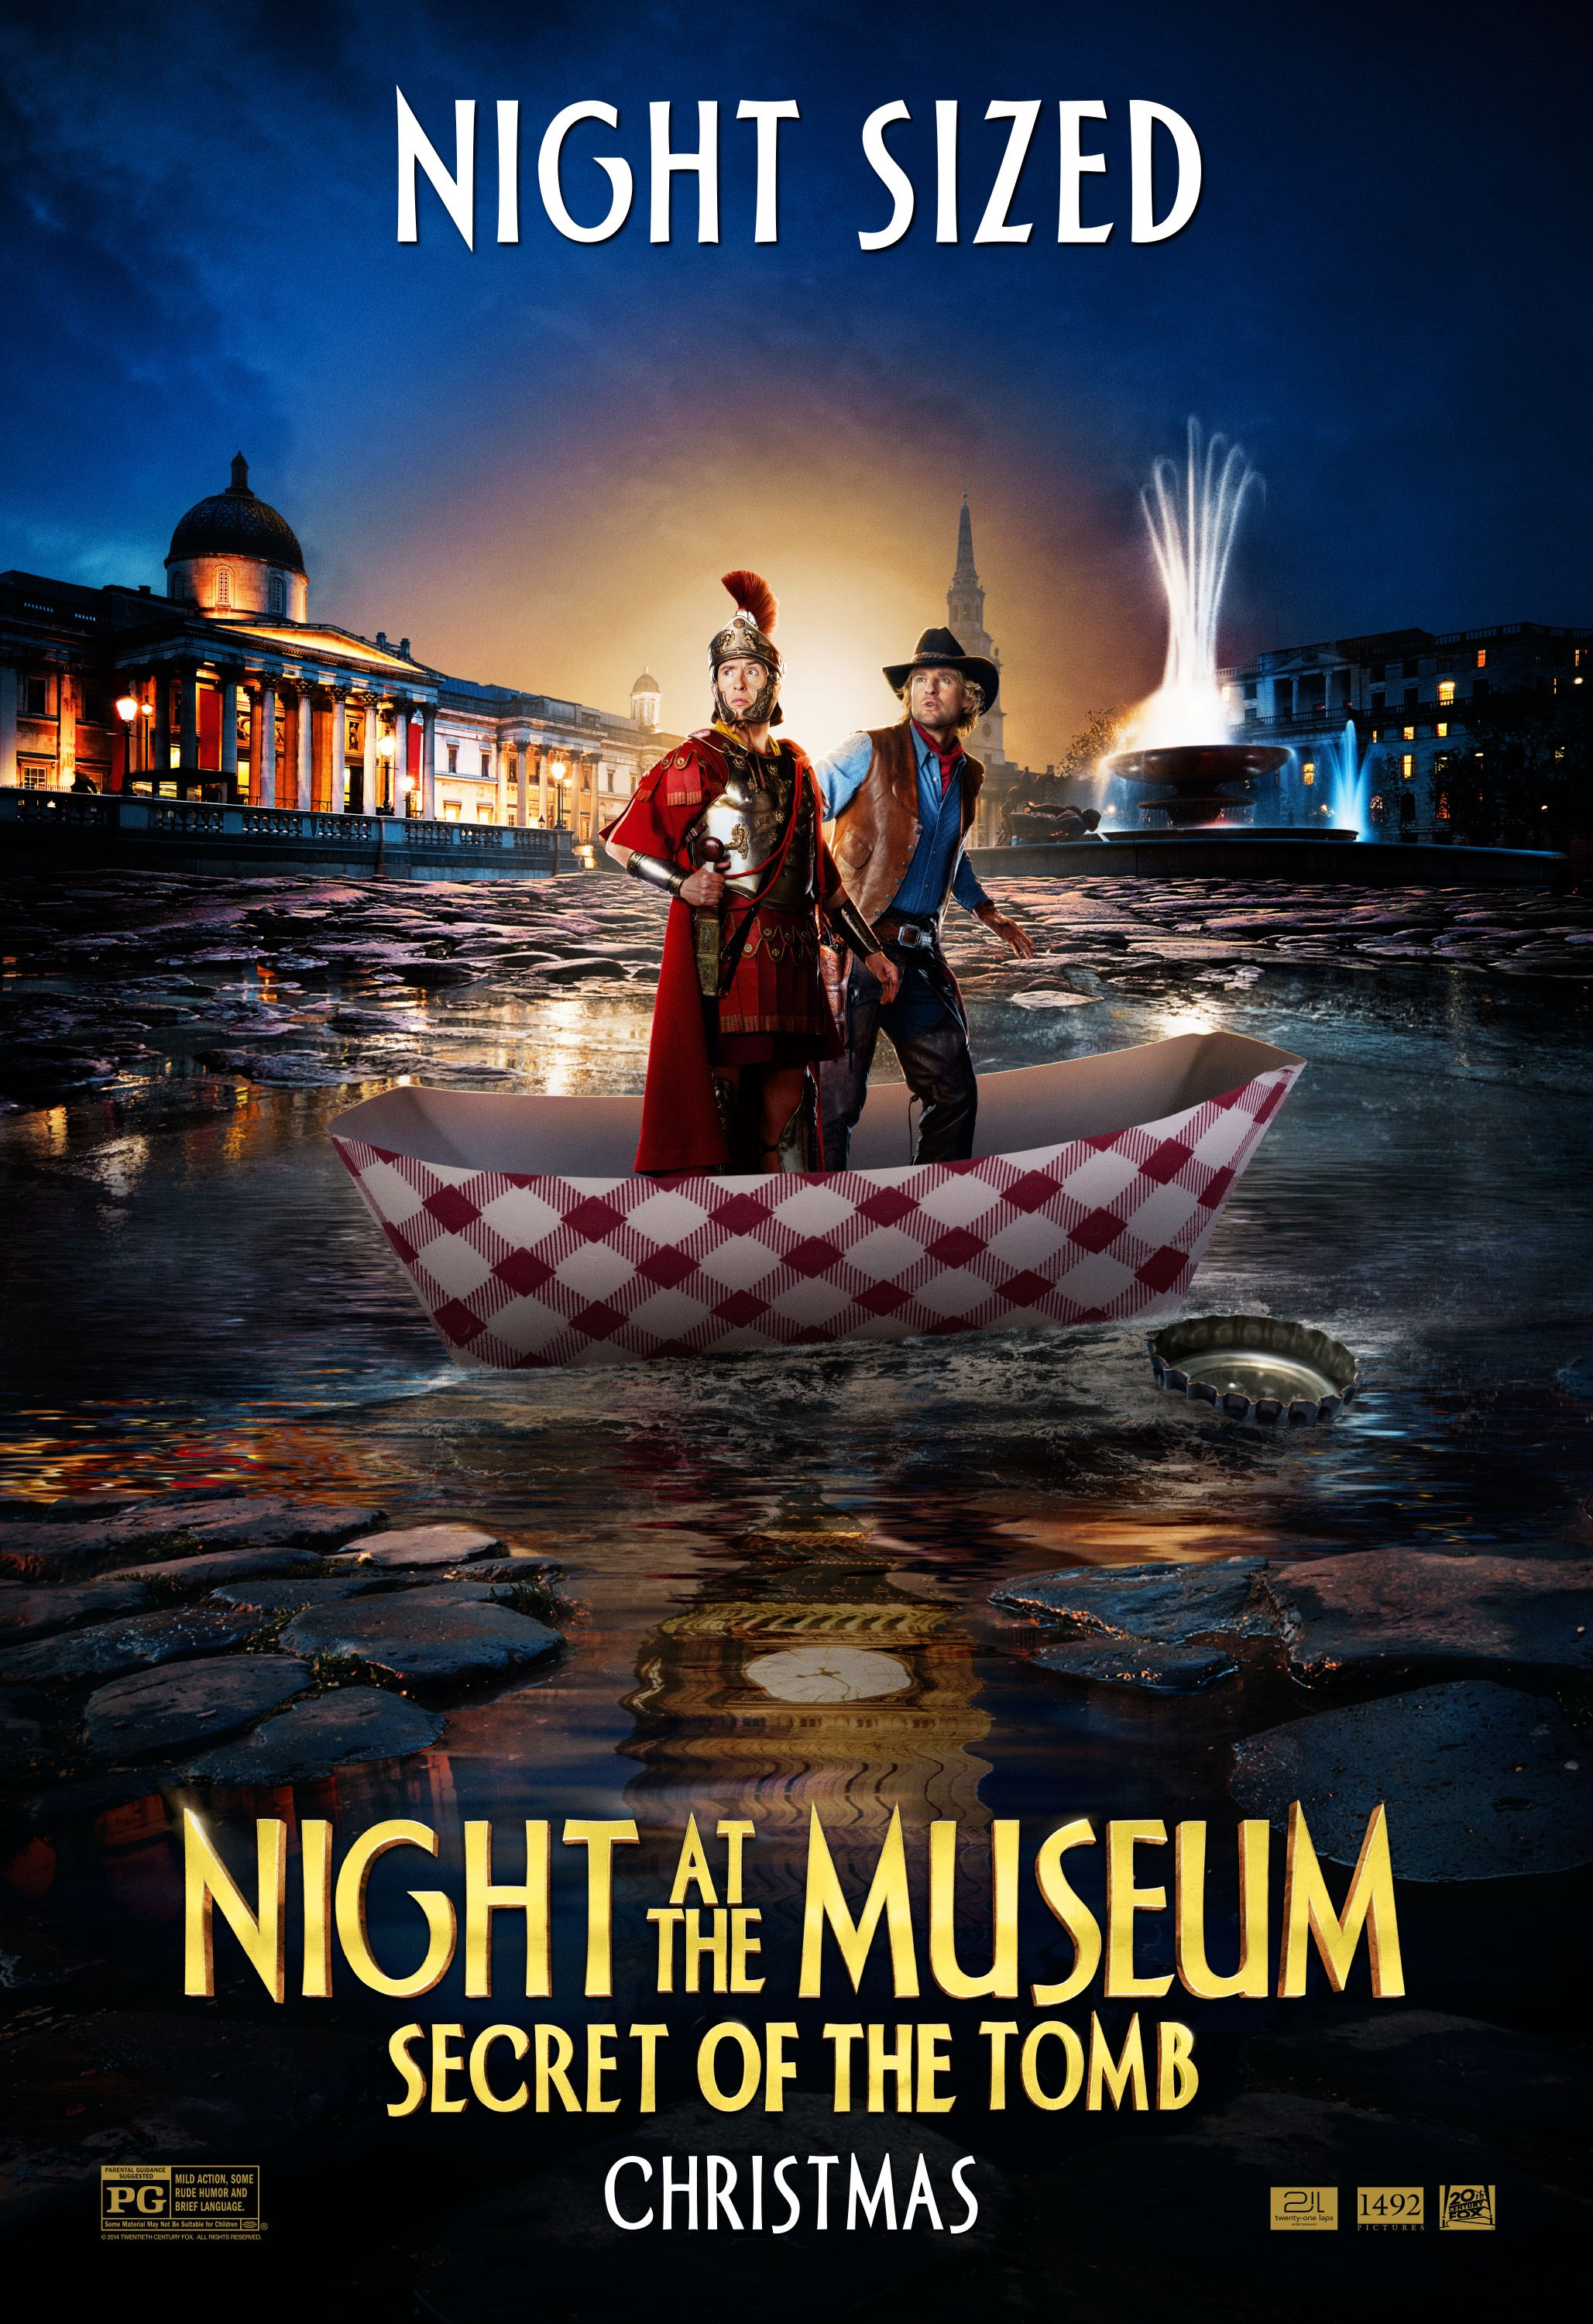 Night at the Museum Secret of the Tomb-PROMO CHAR-21NOVEMBRO2014-05